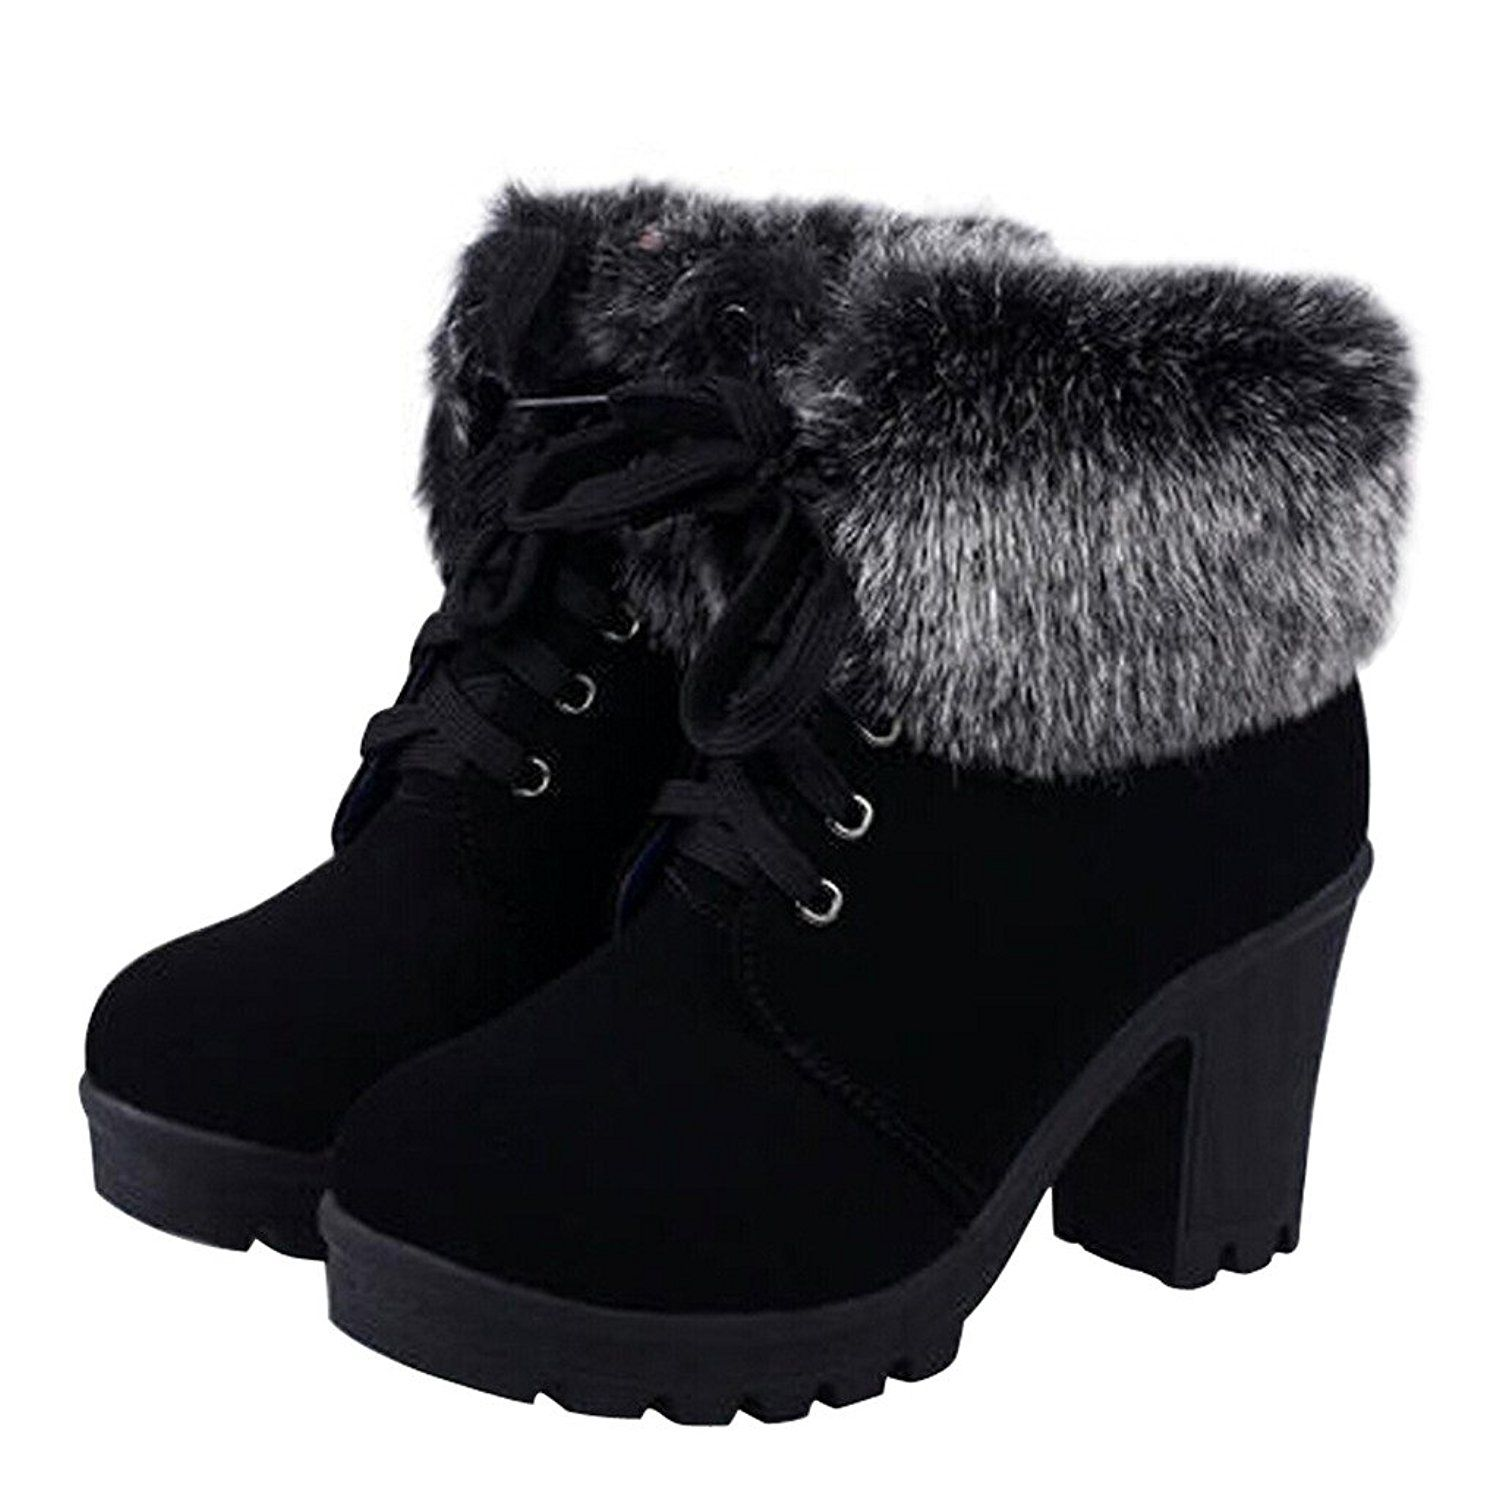 46dff8d00ad72 Dear Time Women Faux Fur Lace-up High Heels Ankle Boots ** This is ...